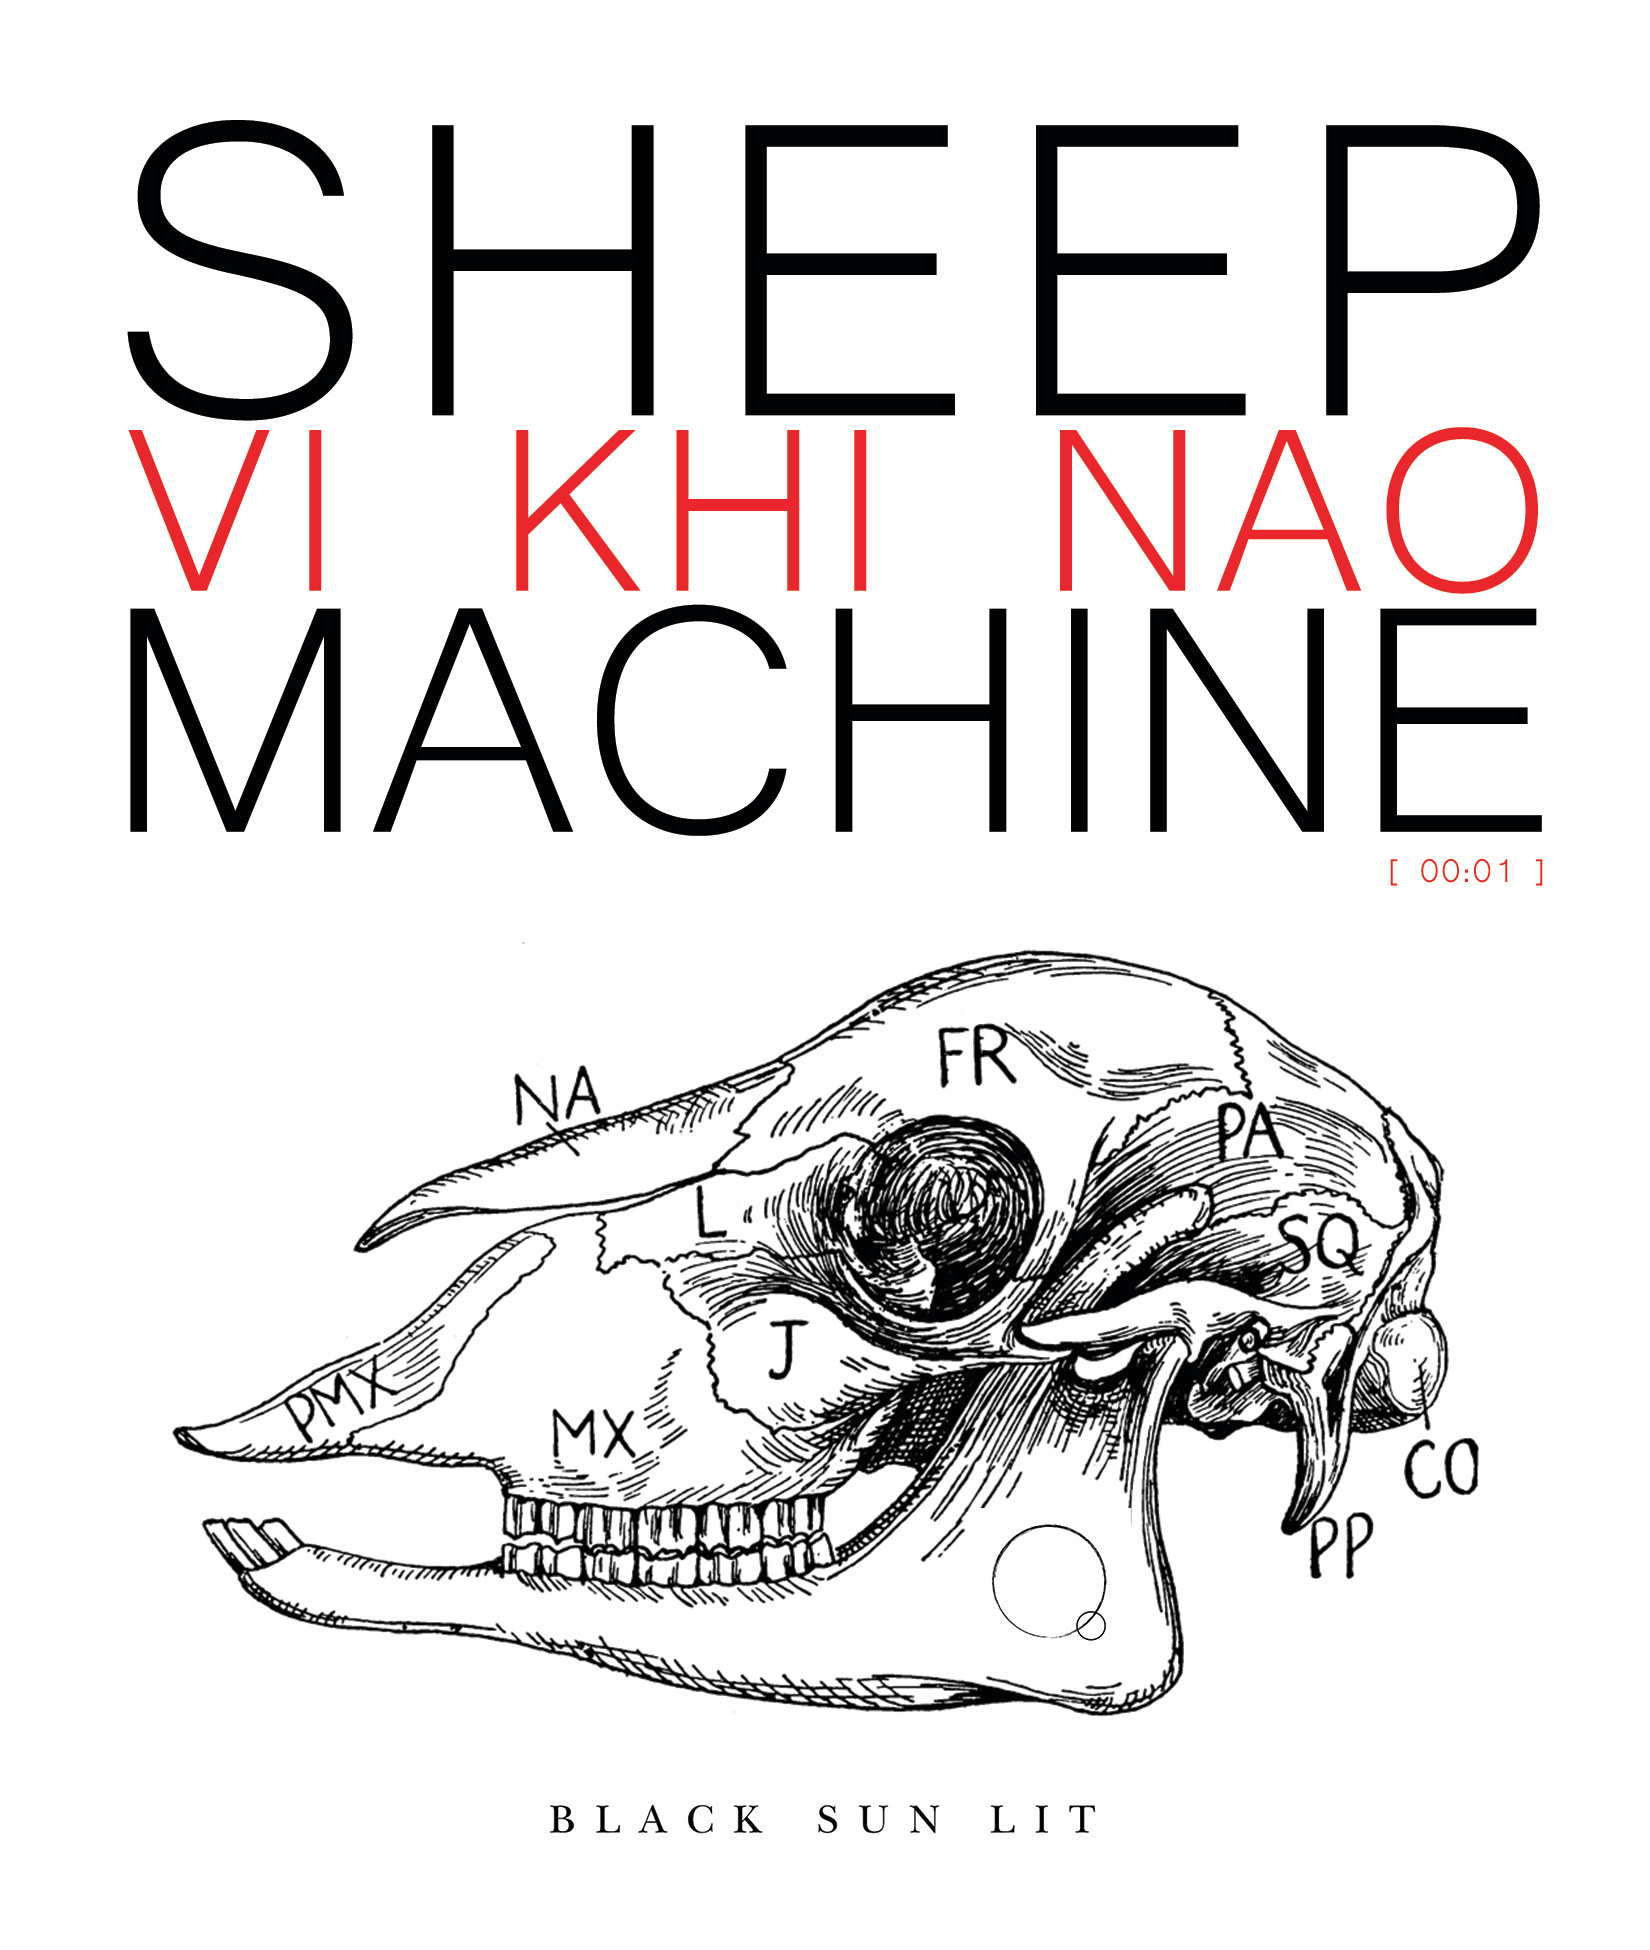 sheep machine (2)